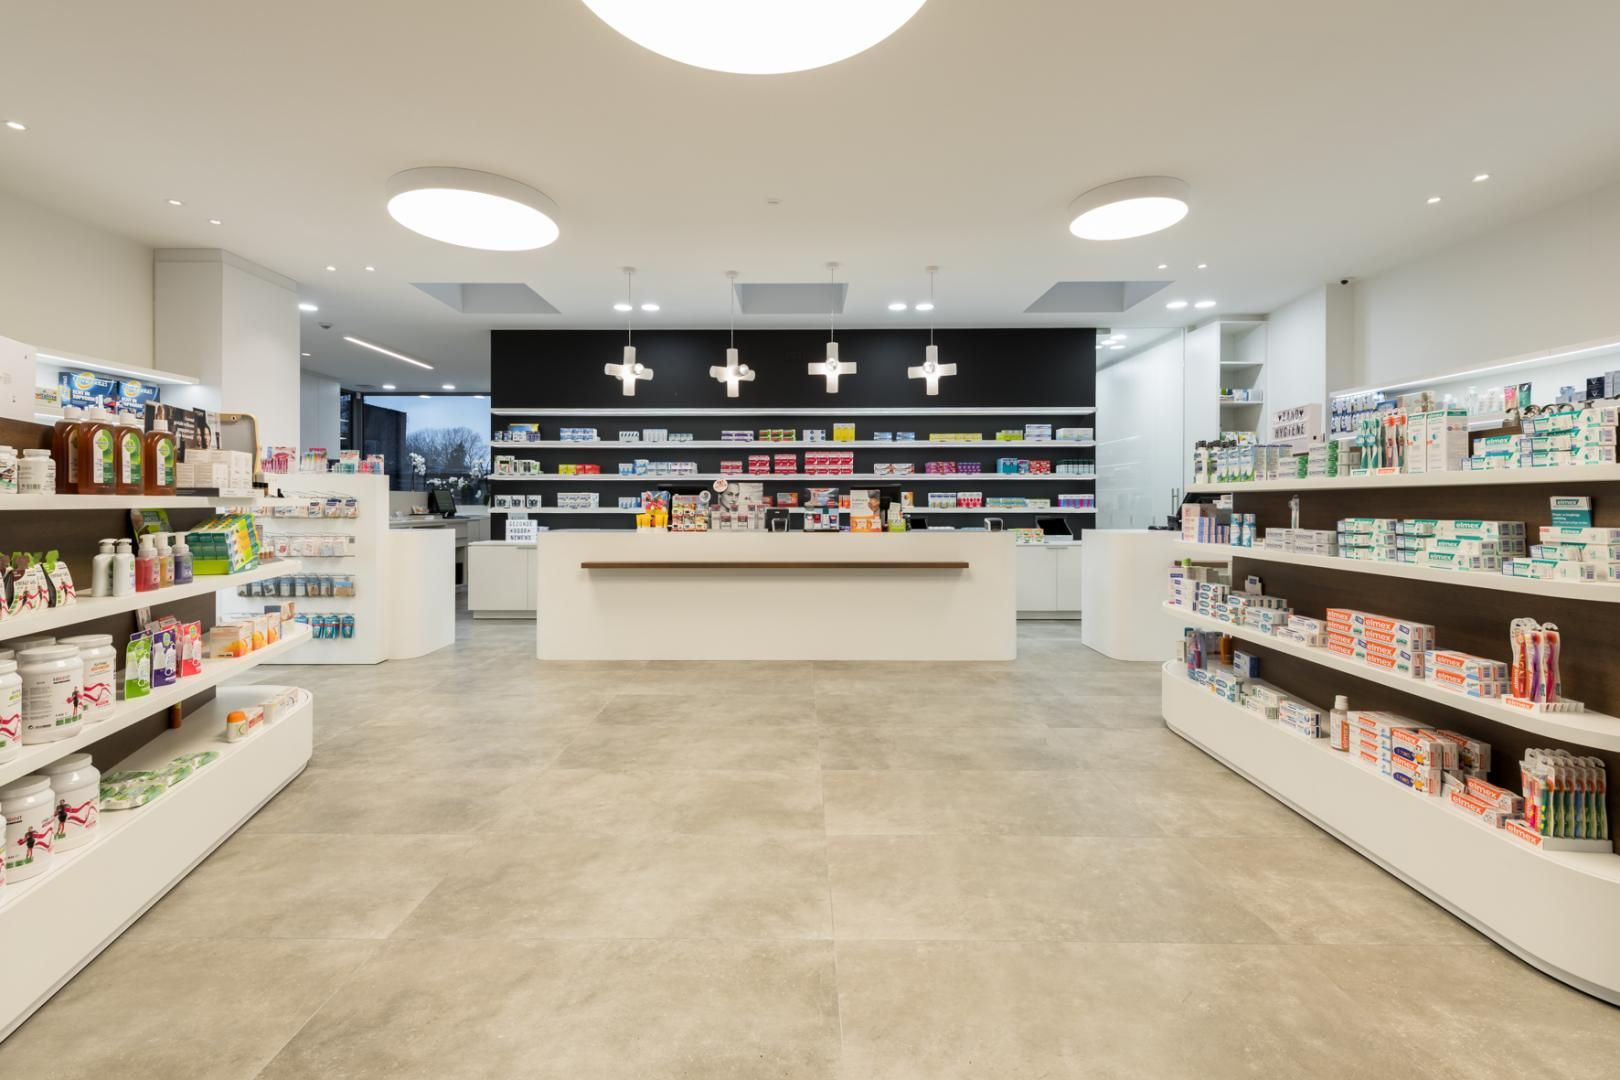 Interieurstylist Limburg Inrichting Apotheek Limburg Jacobs Interieur Bree Jacobs